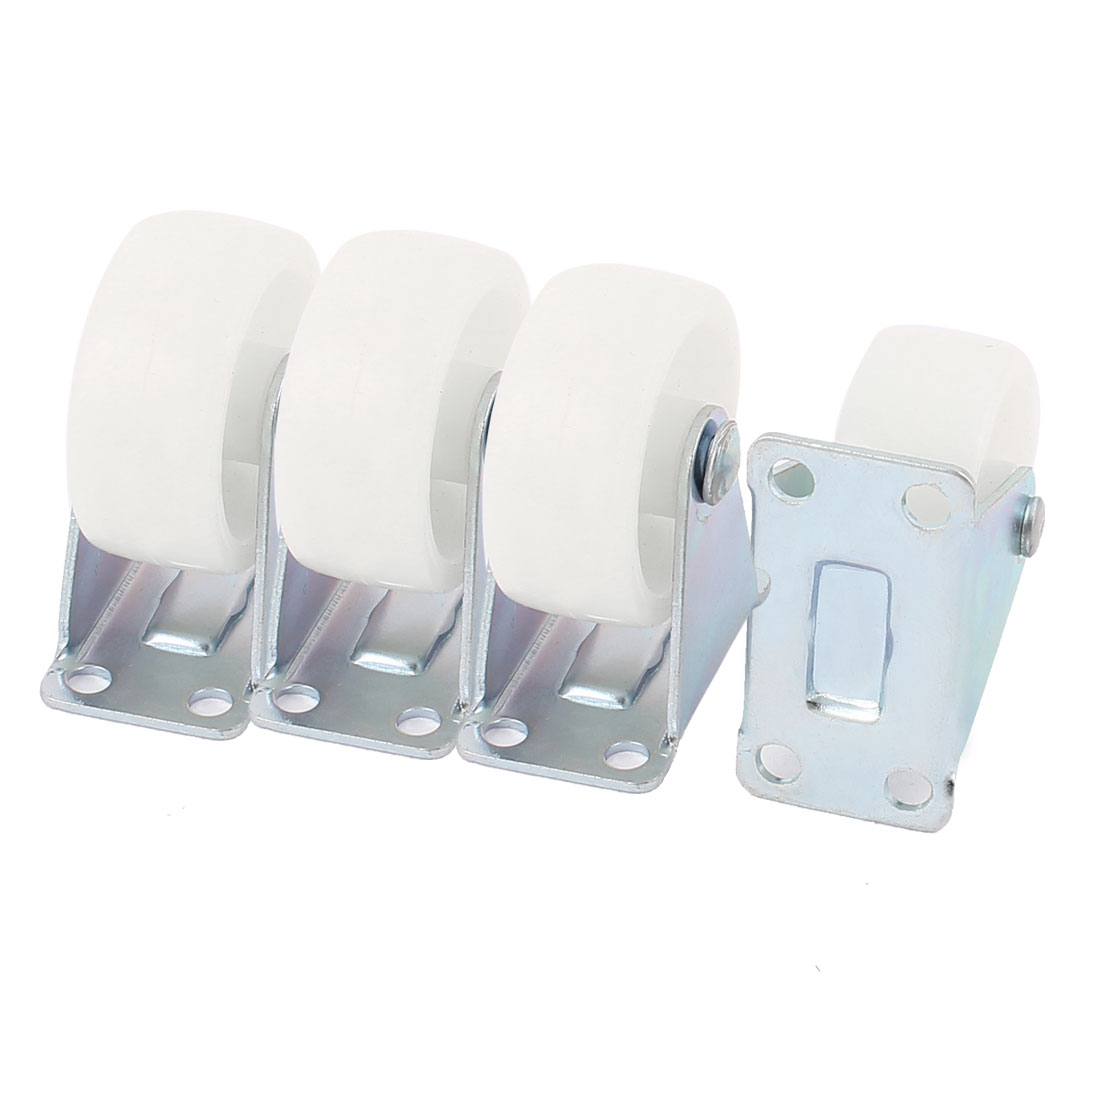 UXCELL Office Chair Furniture Trolley Carts 1.5 Pp Wheel Top Plate Fixed Caster 4Pcs